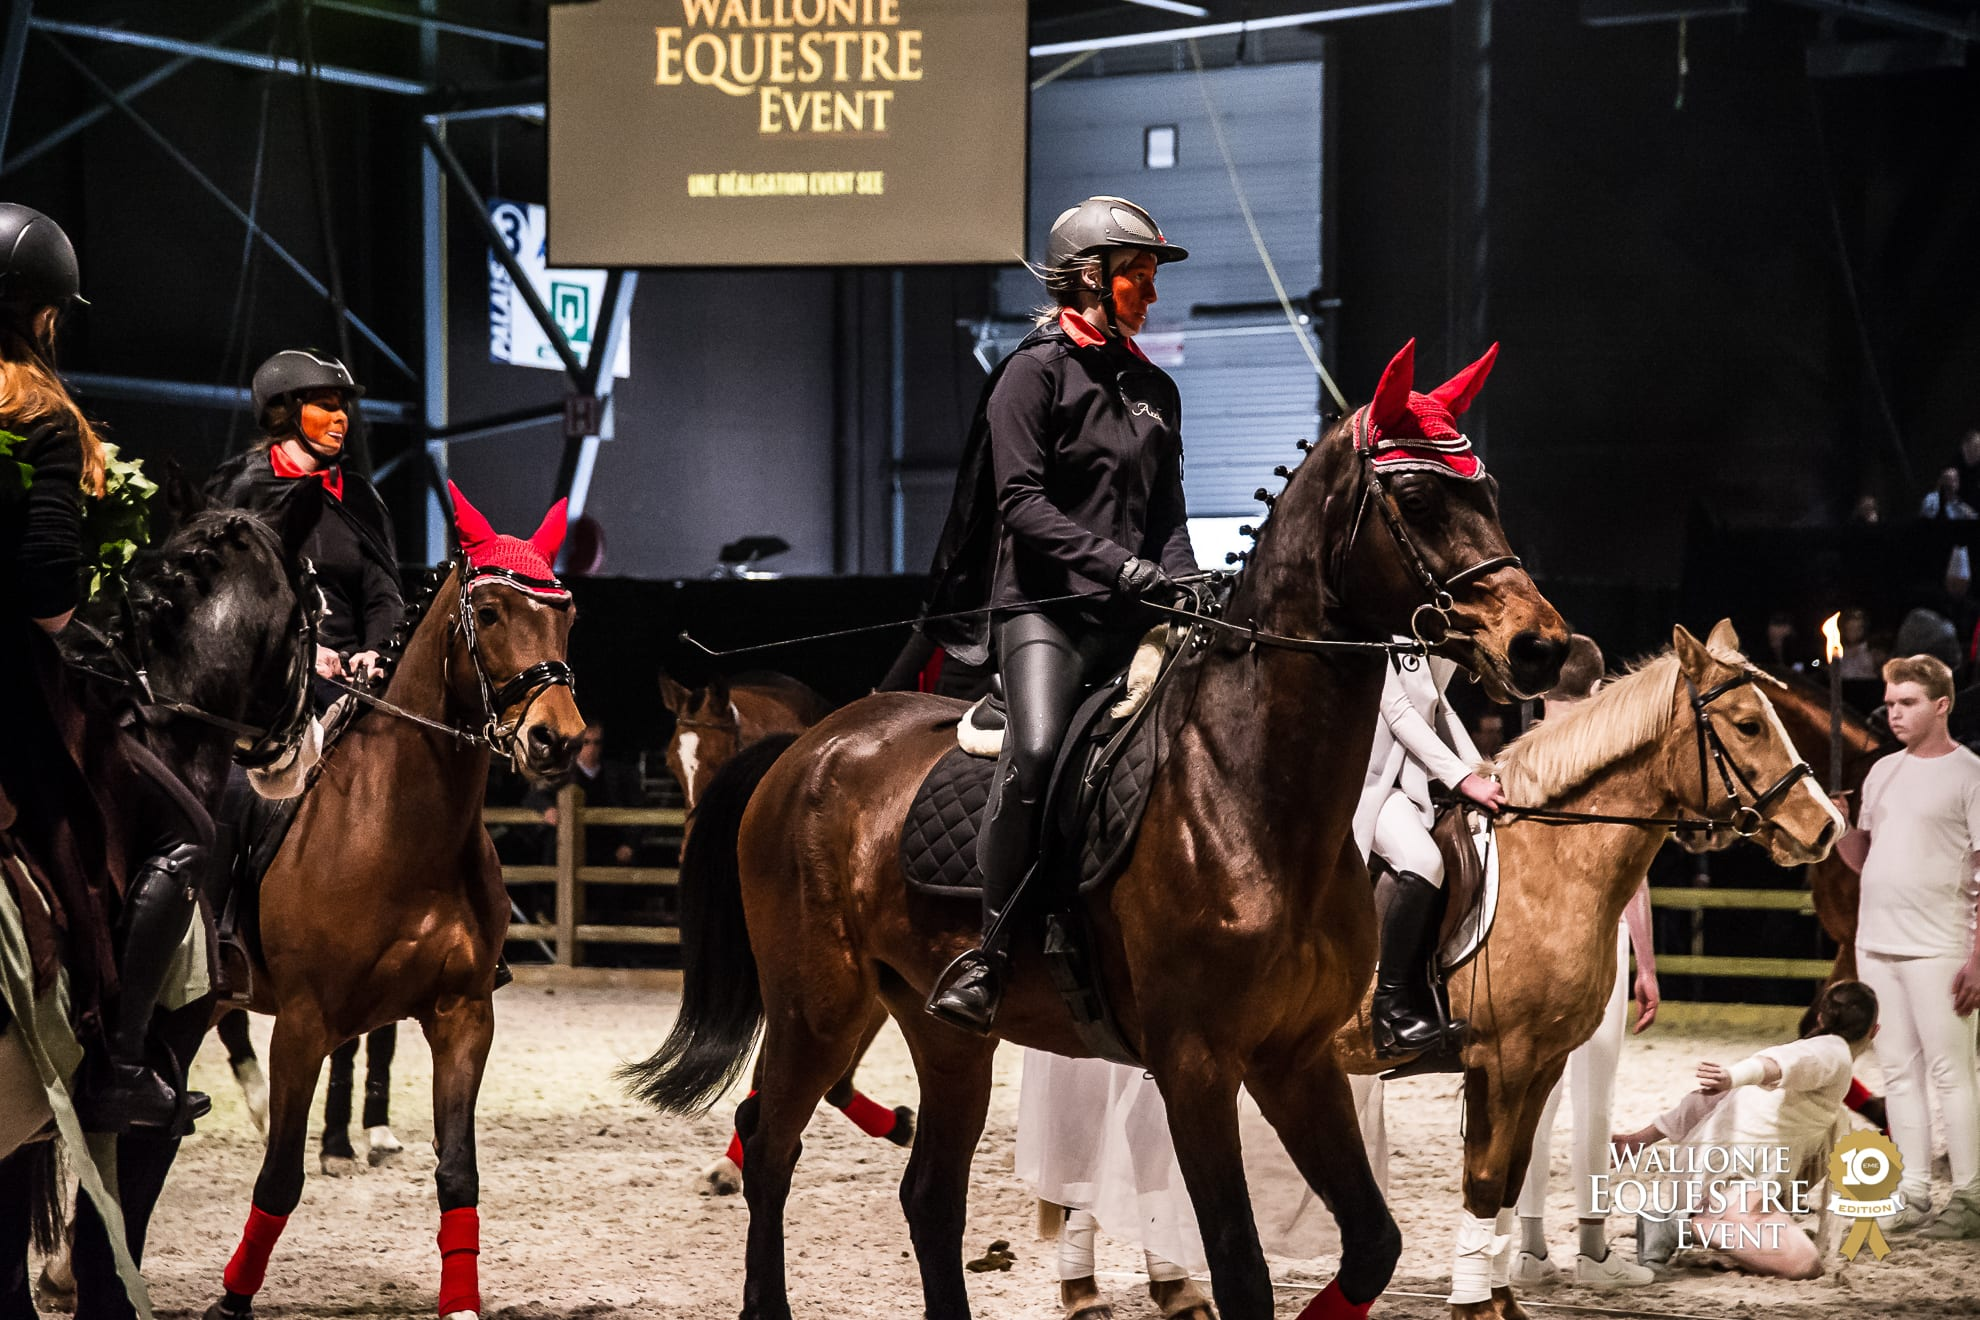 Le Sabot d'Or – Wallonie Equestre Event